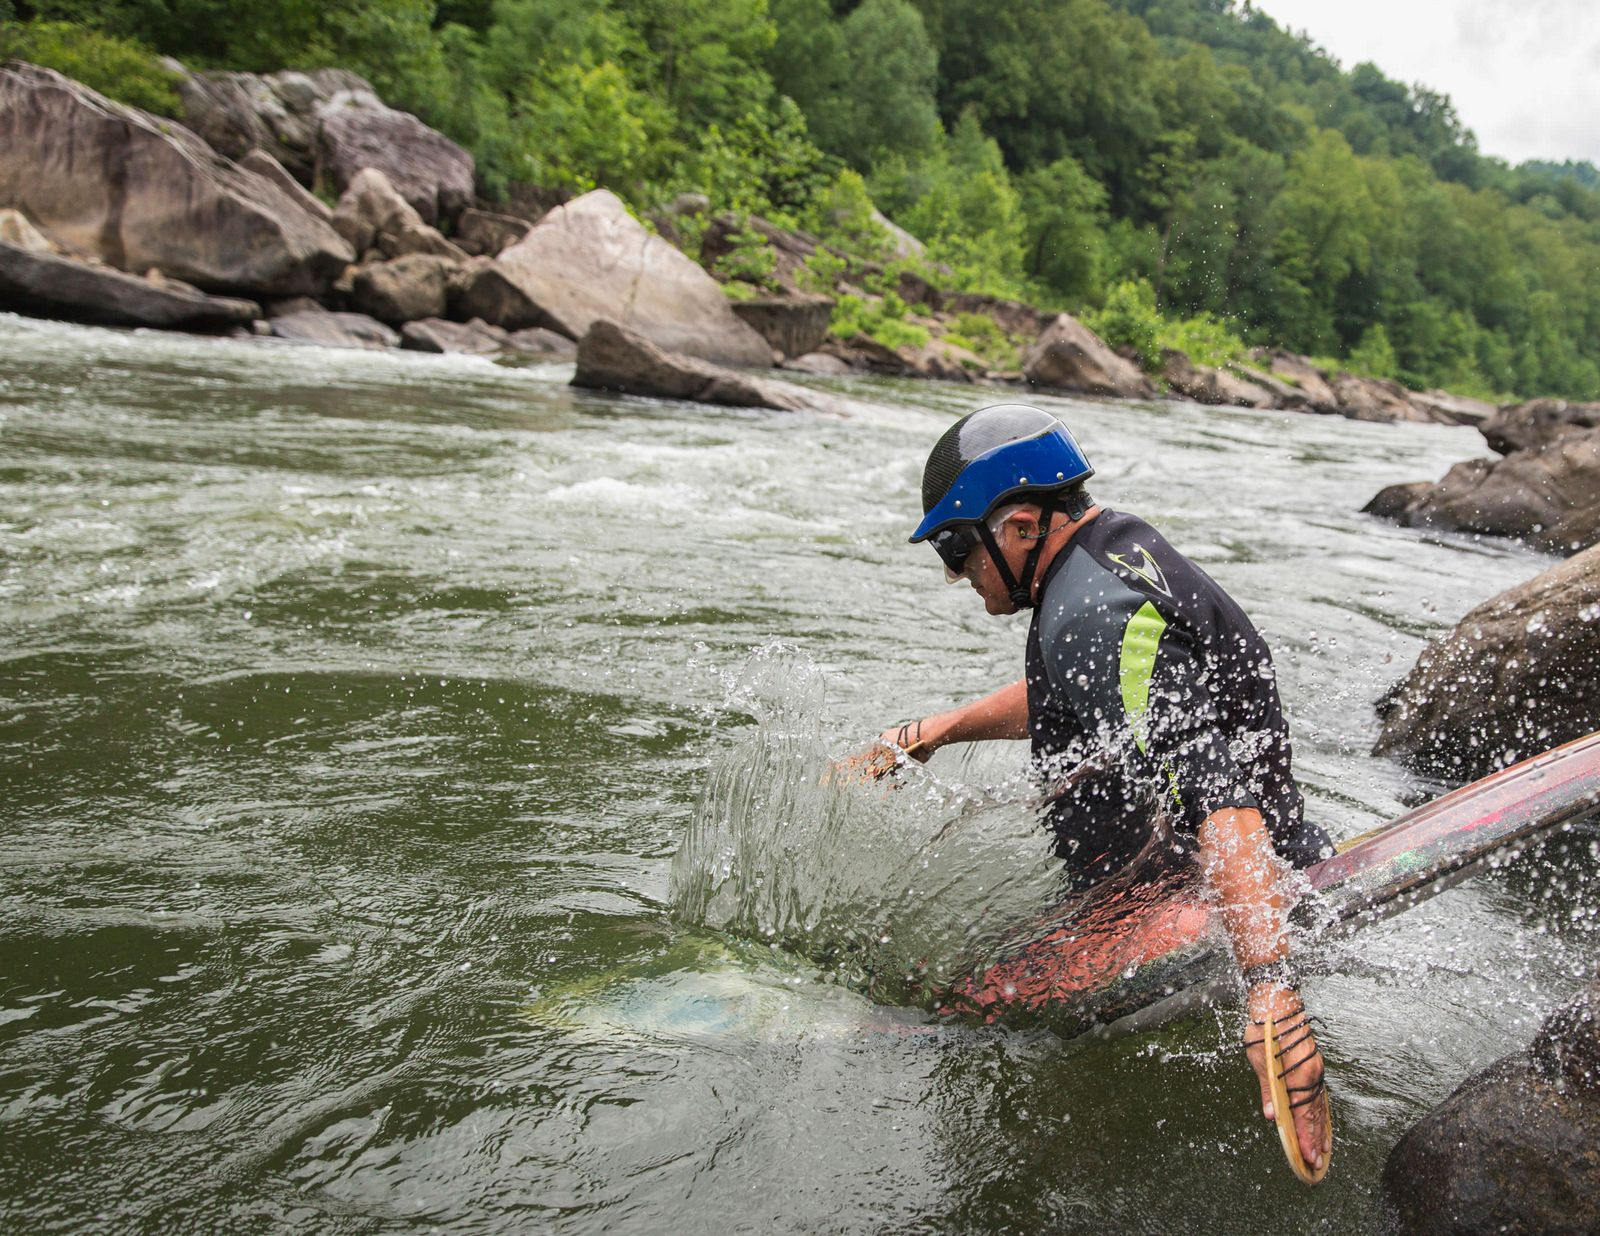 The Cheat River Takes a Turn